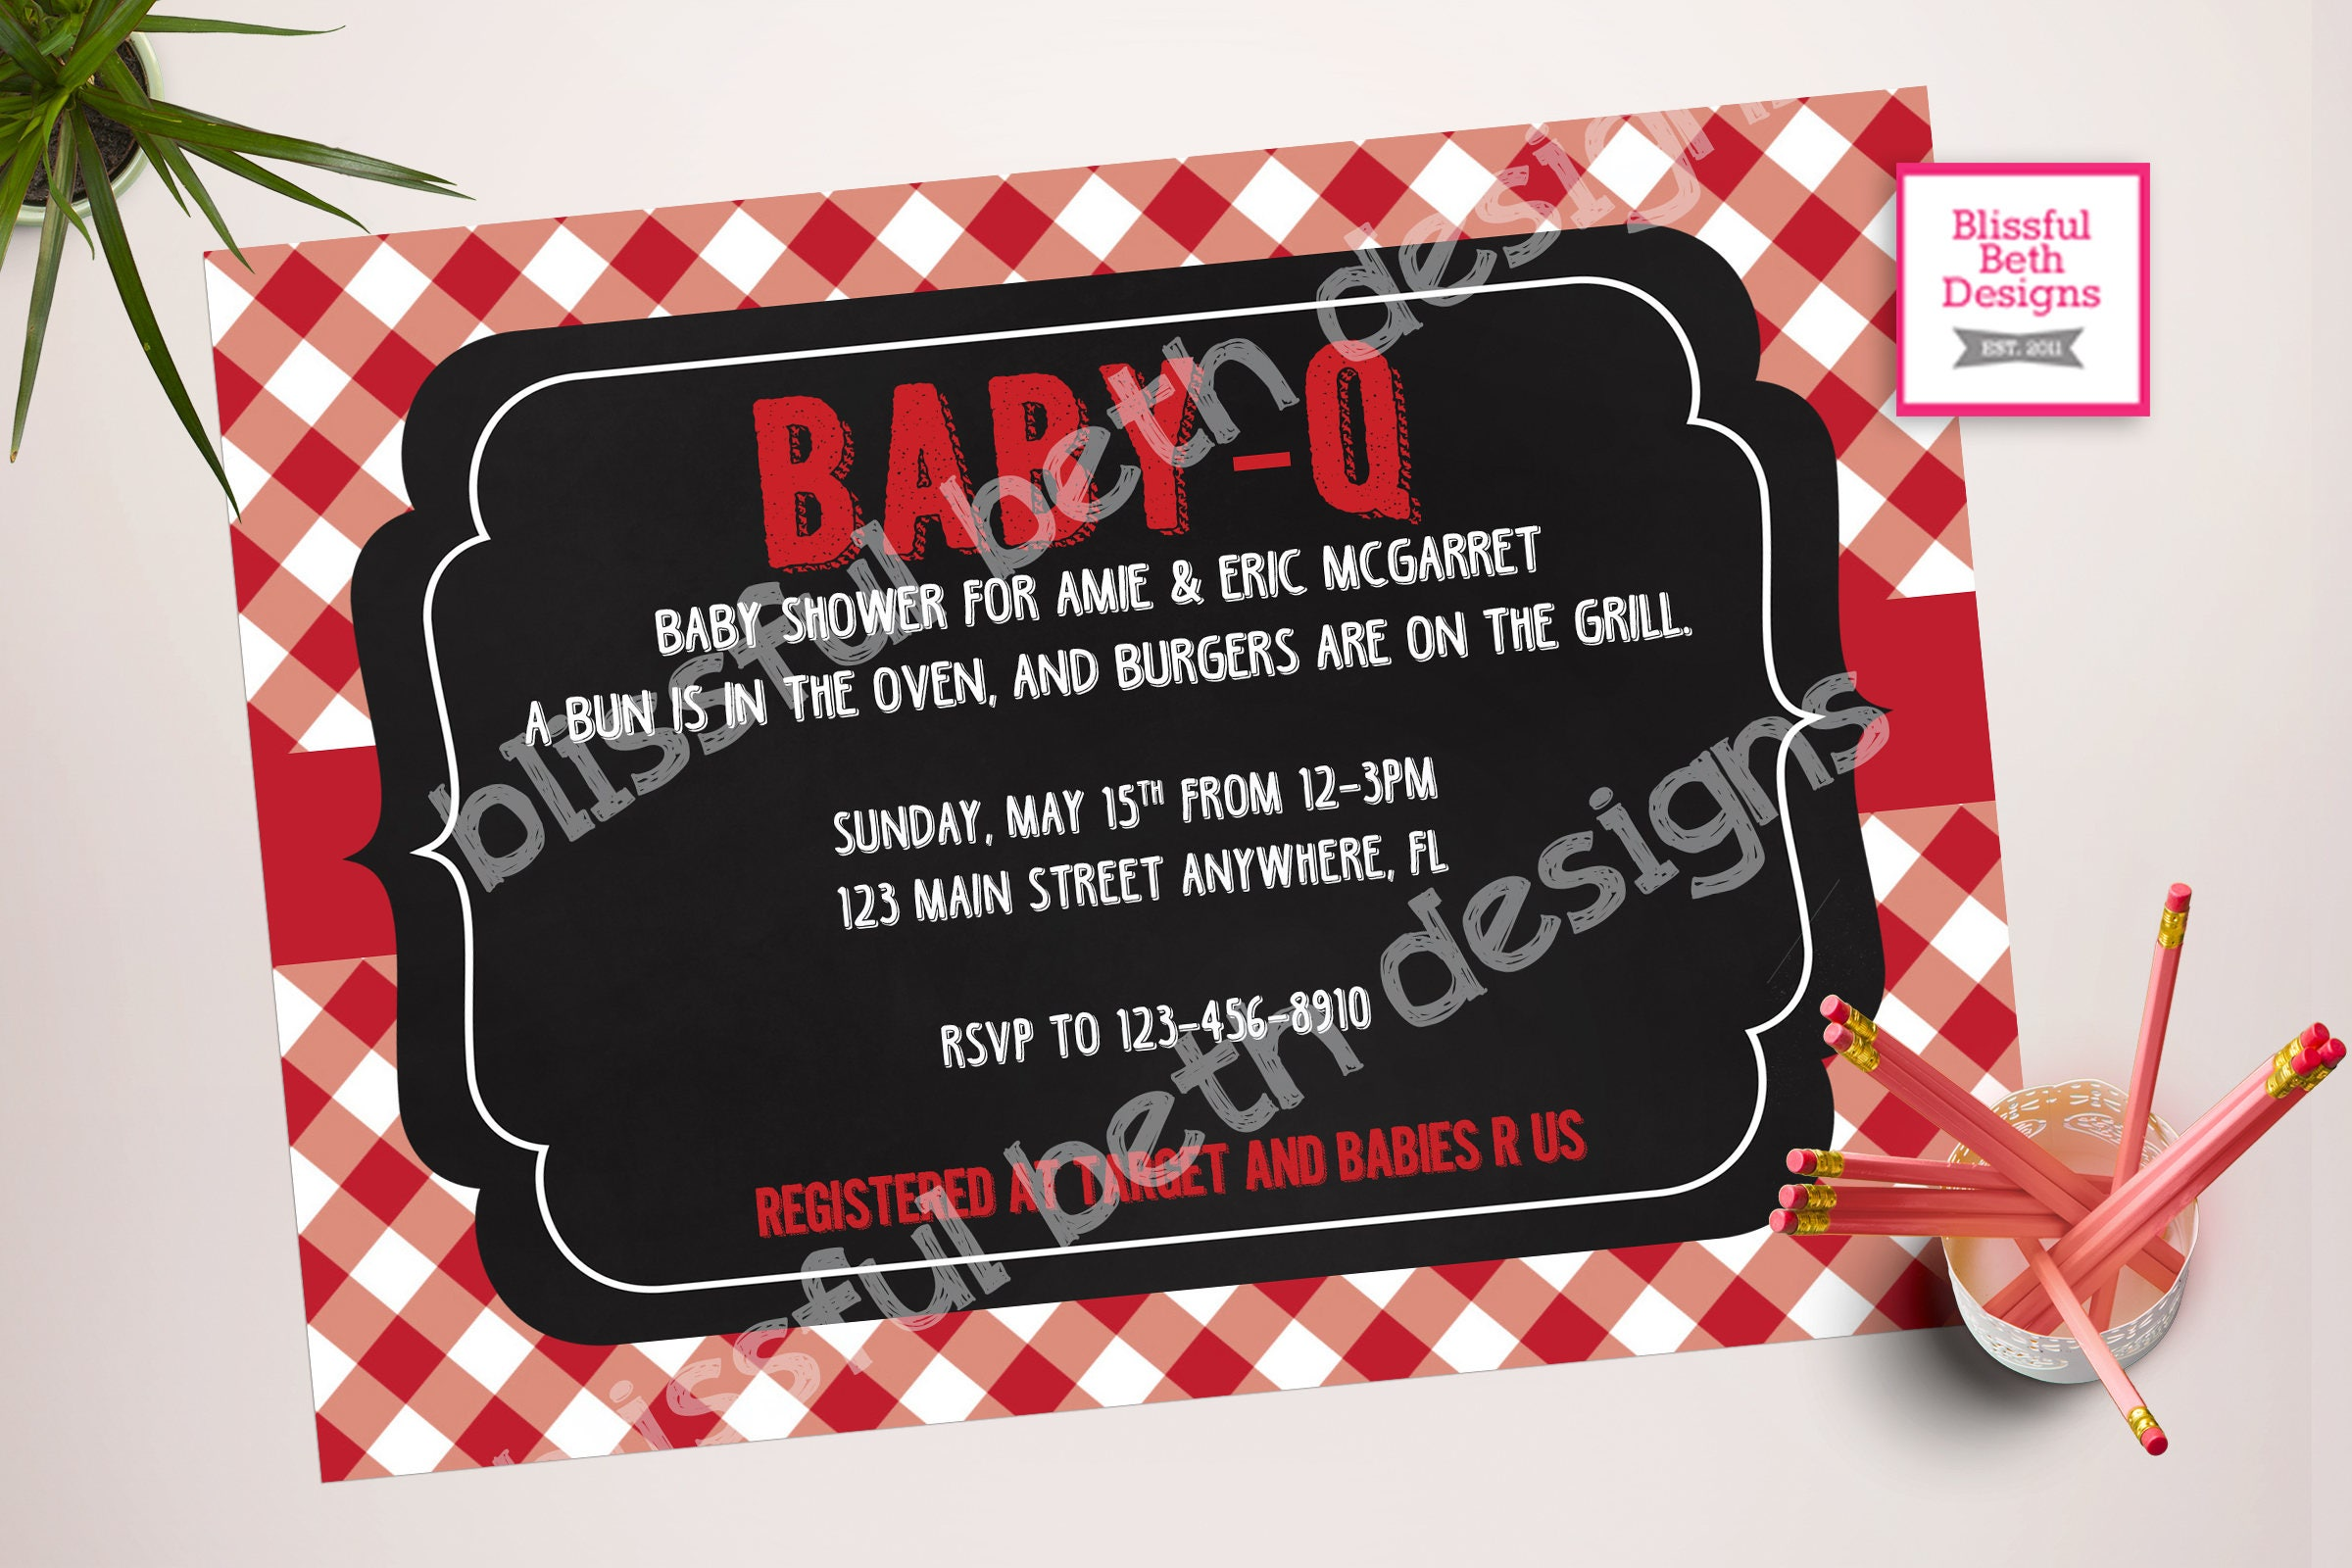 Baby Q Baby Shower Invitation Package BABY Q Shower Invitation Bun In The  Oven, Burgers On The Grill Baby Q, BBQ